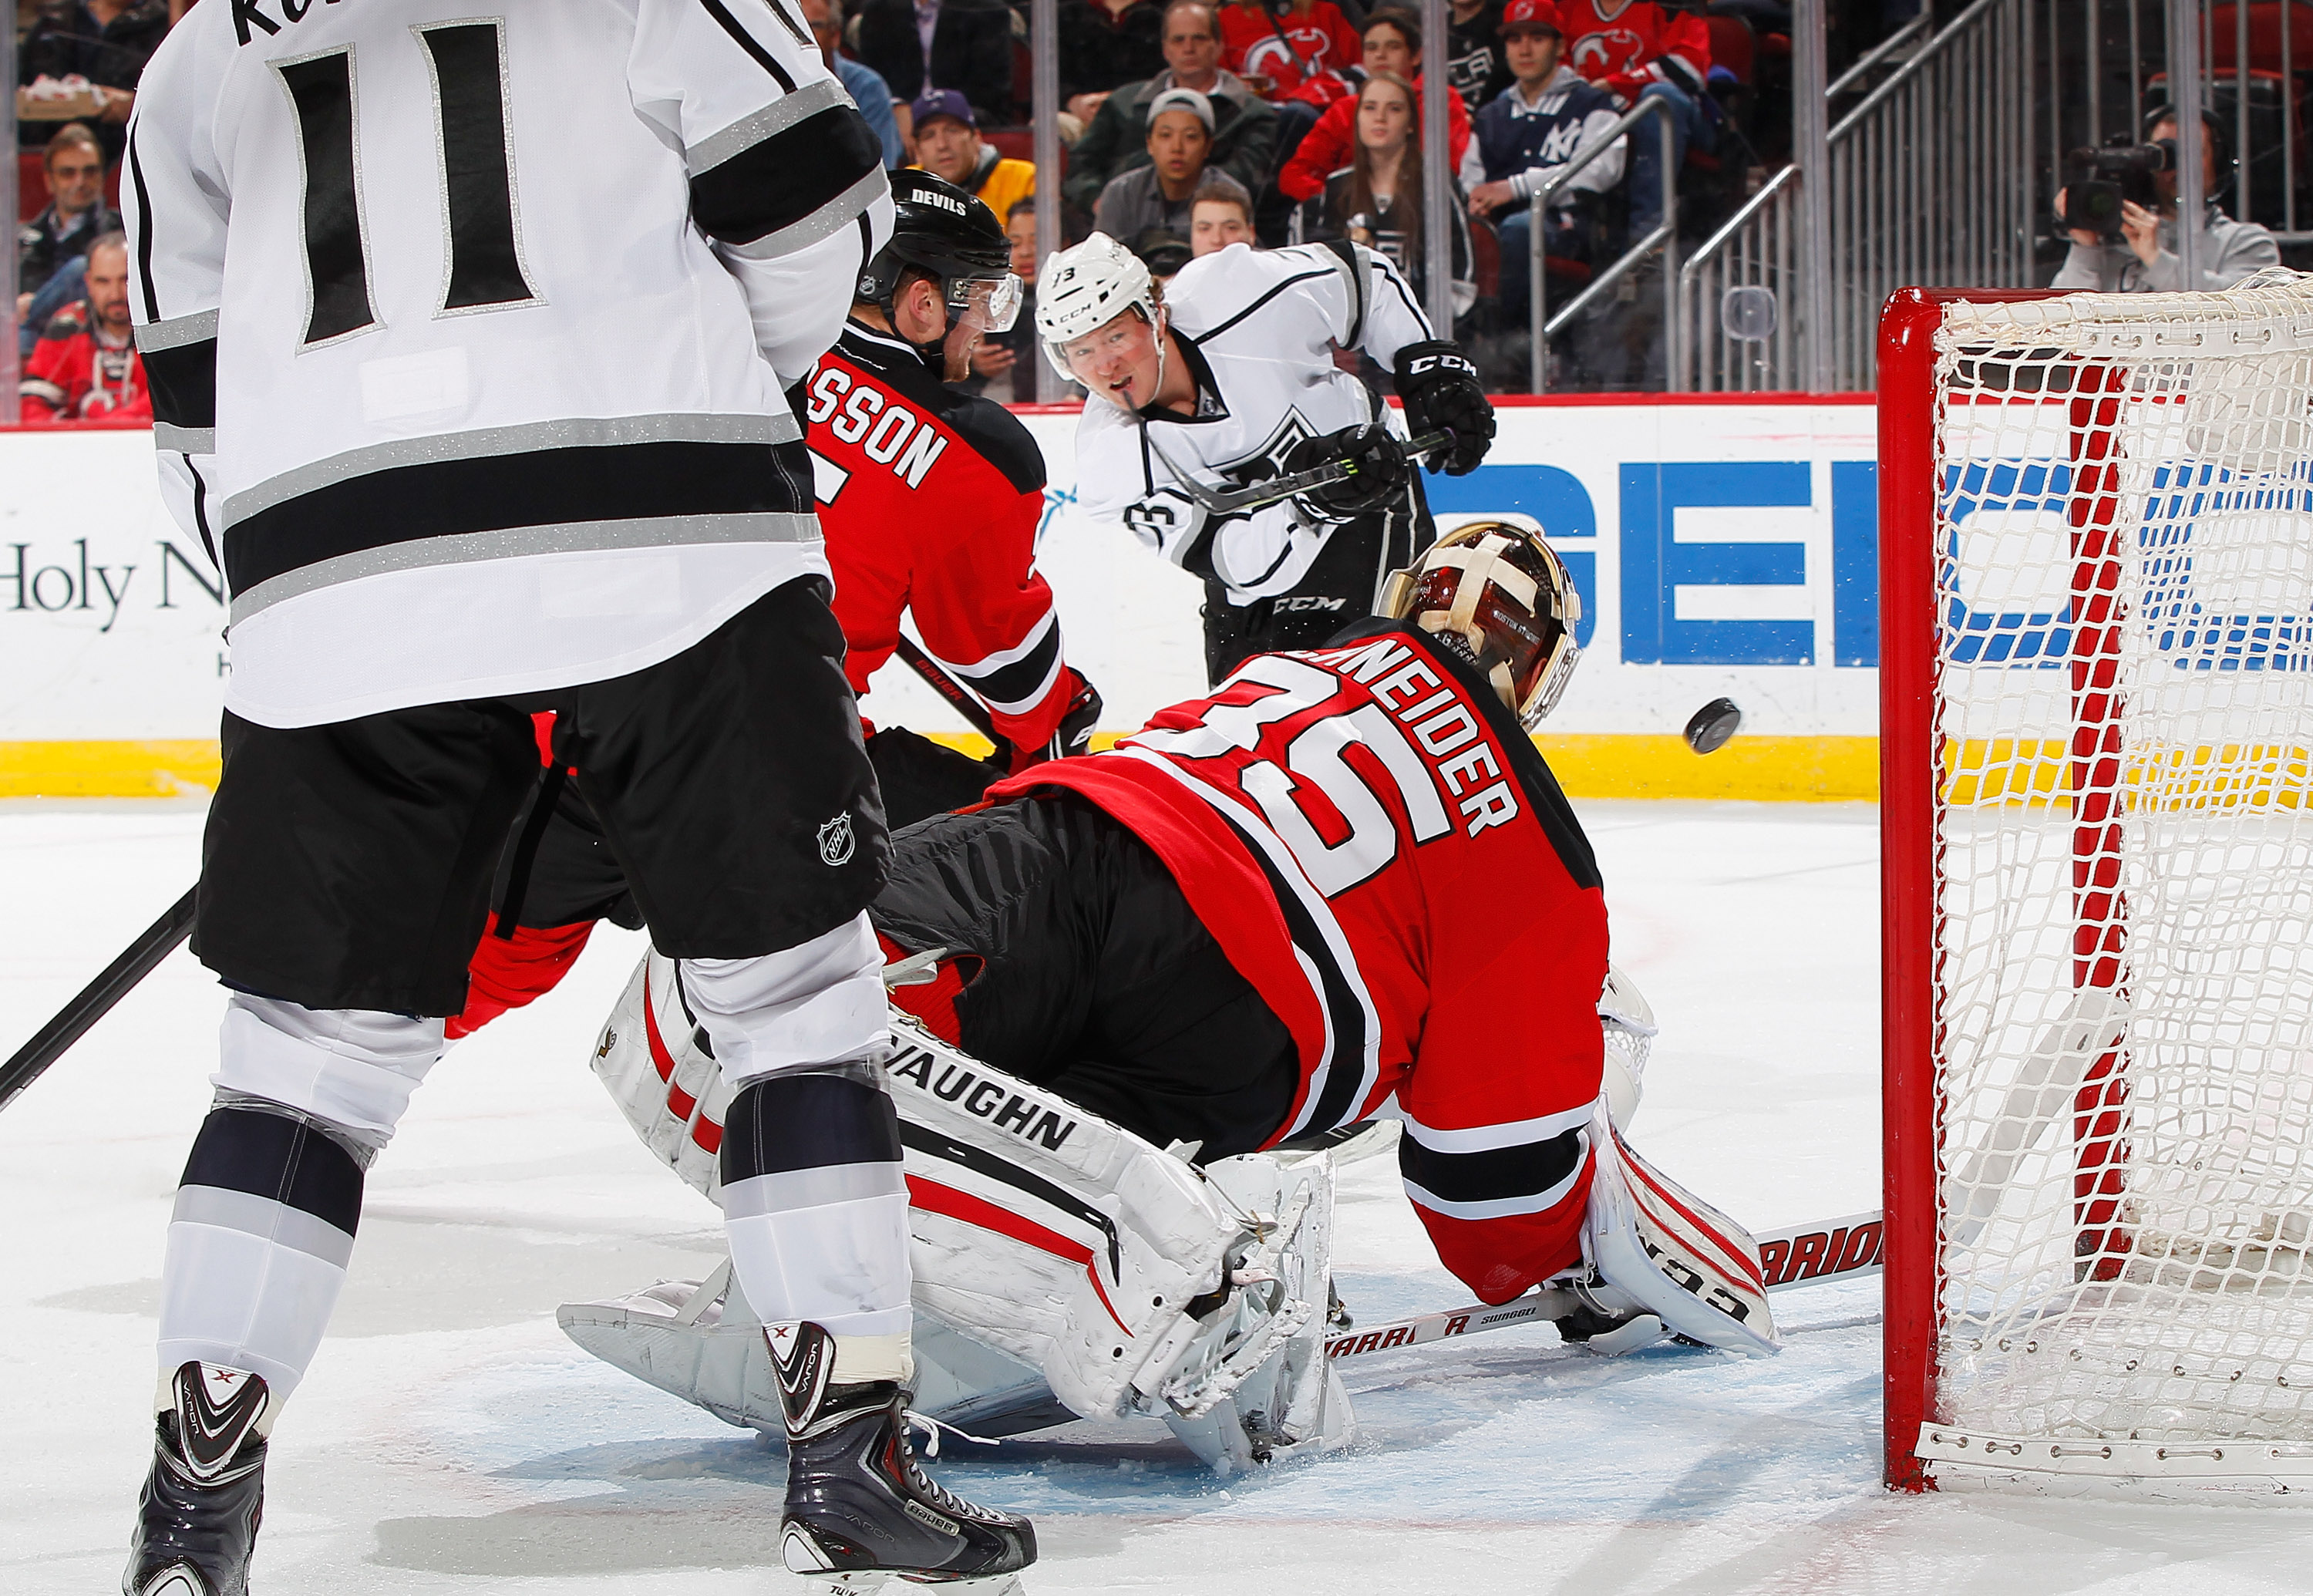 83e324f31f8 Game 55 Preview: Los Angeles at New Jersey - LA Kings Insider